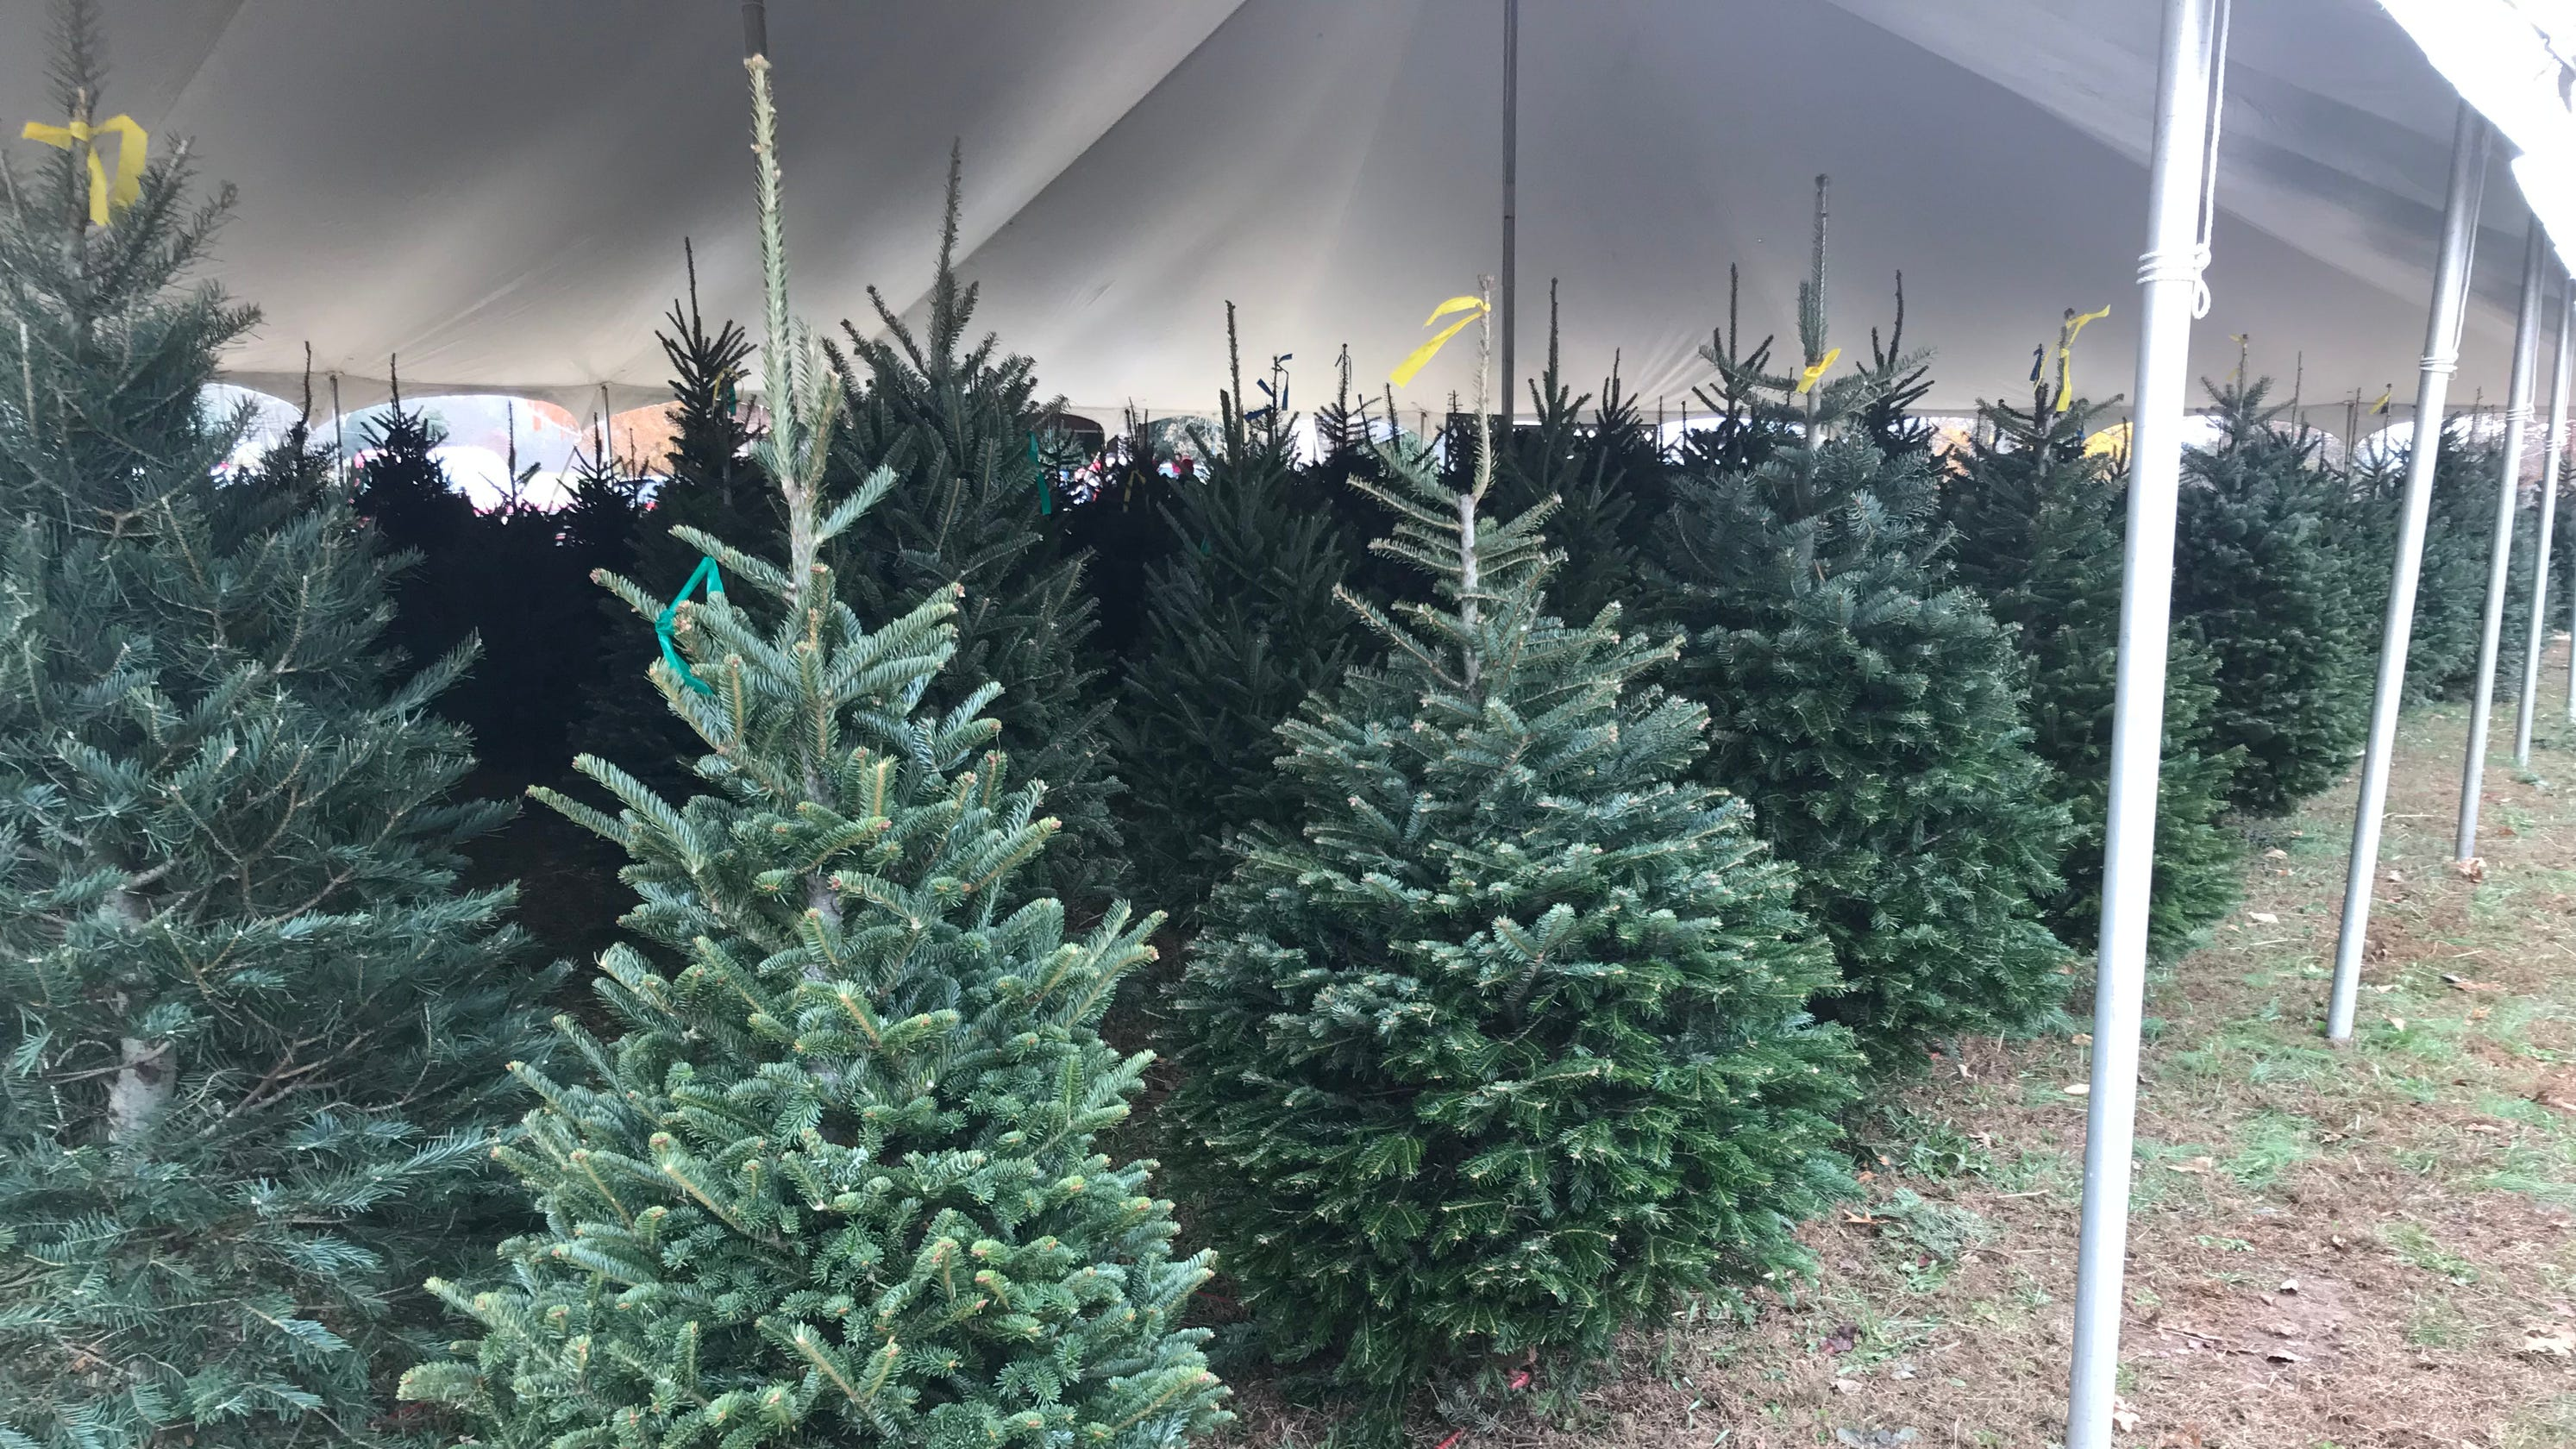 Tennesseans, why are you paying more for cut Christmas trees here?